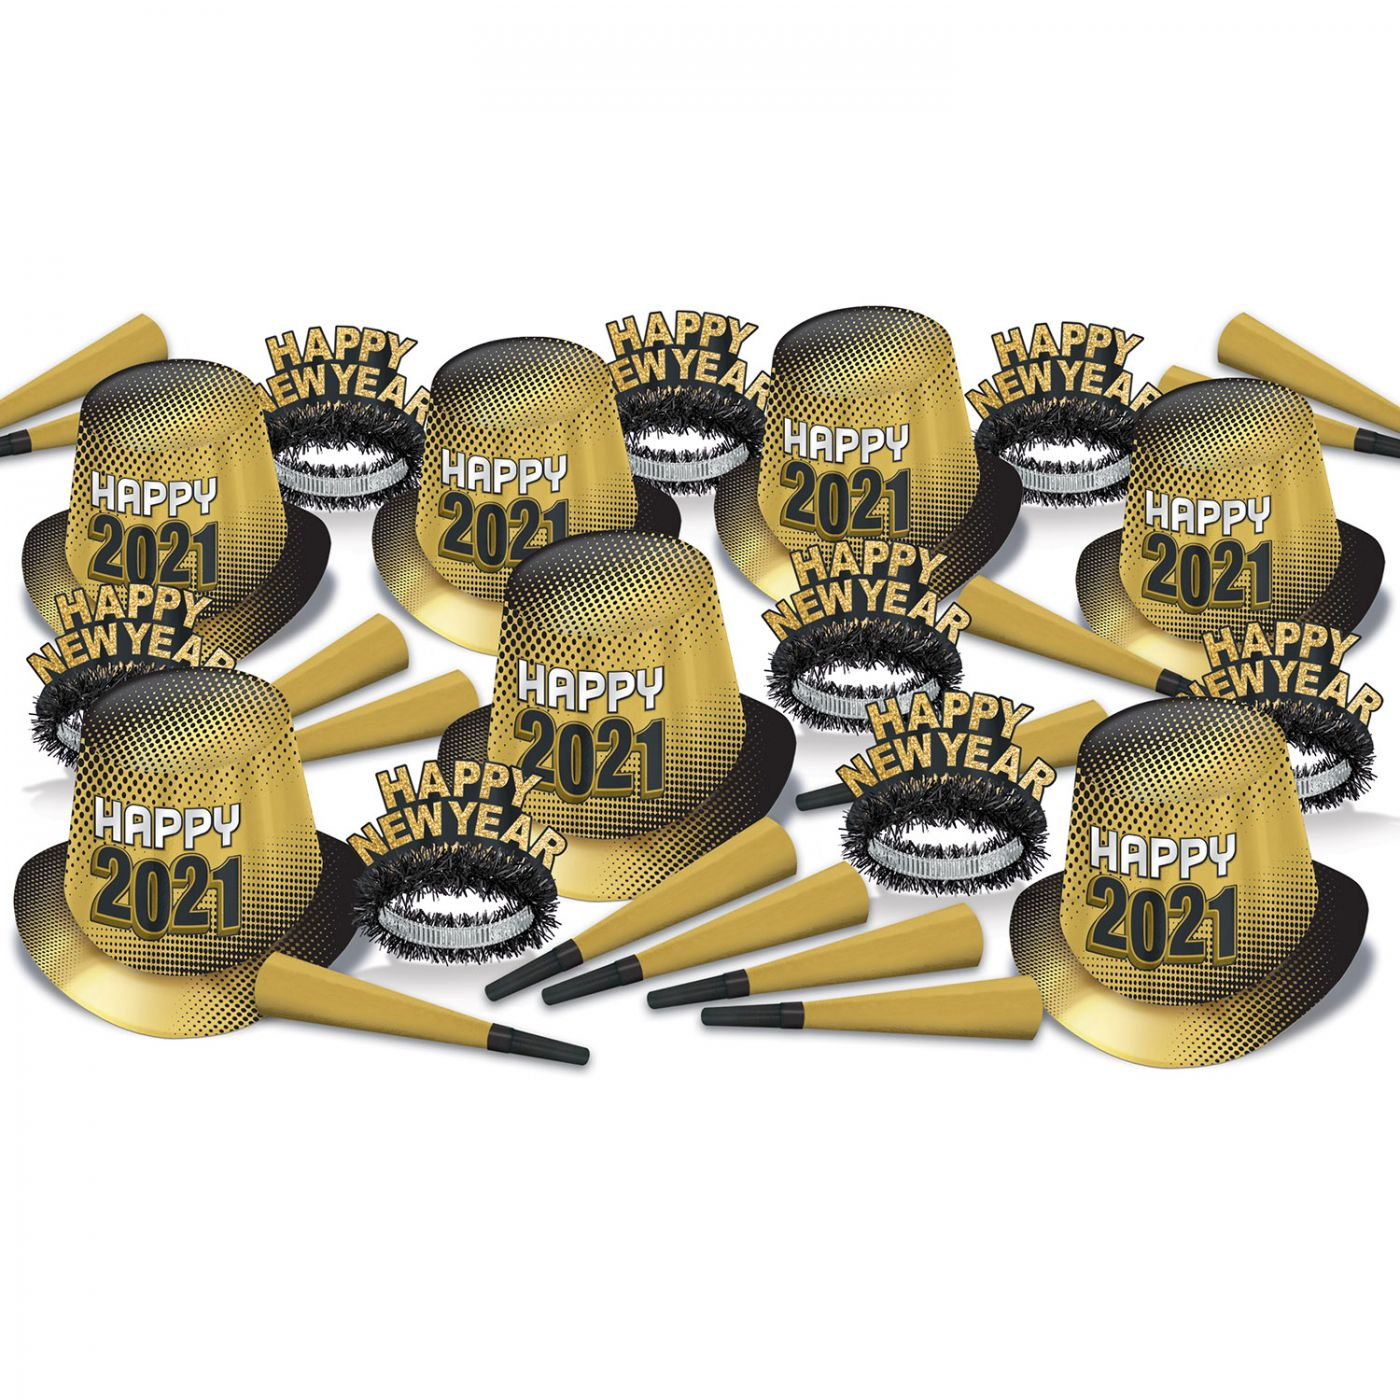 New Year  2021  Gold Asst for 50 image